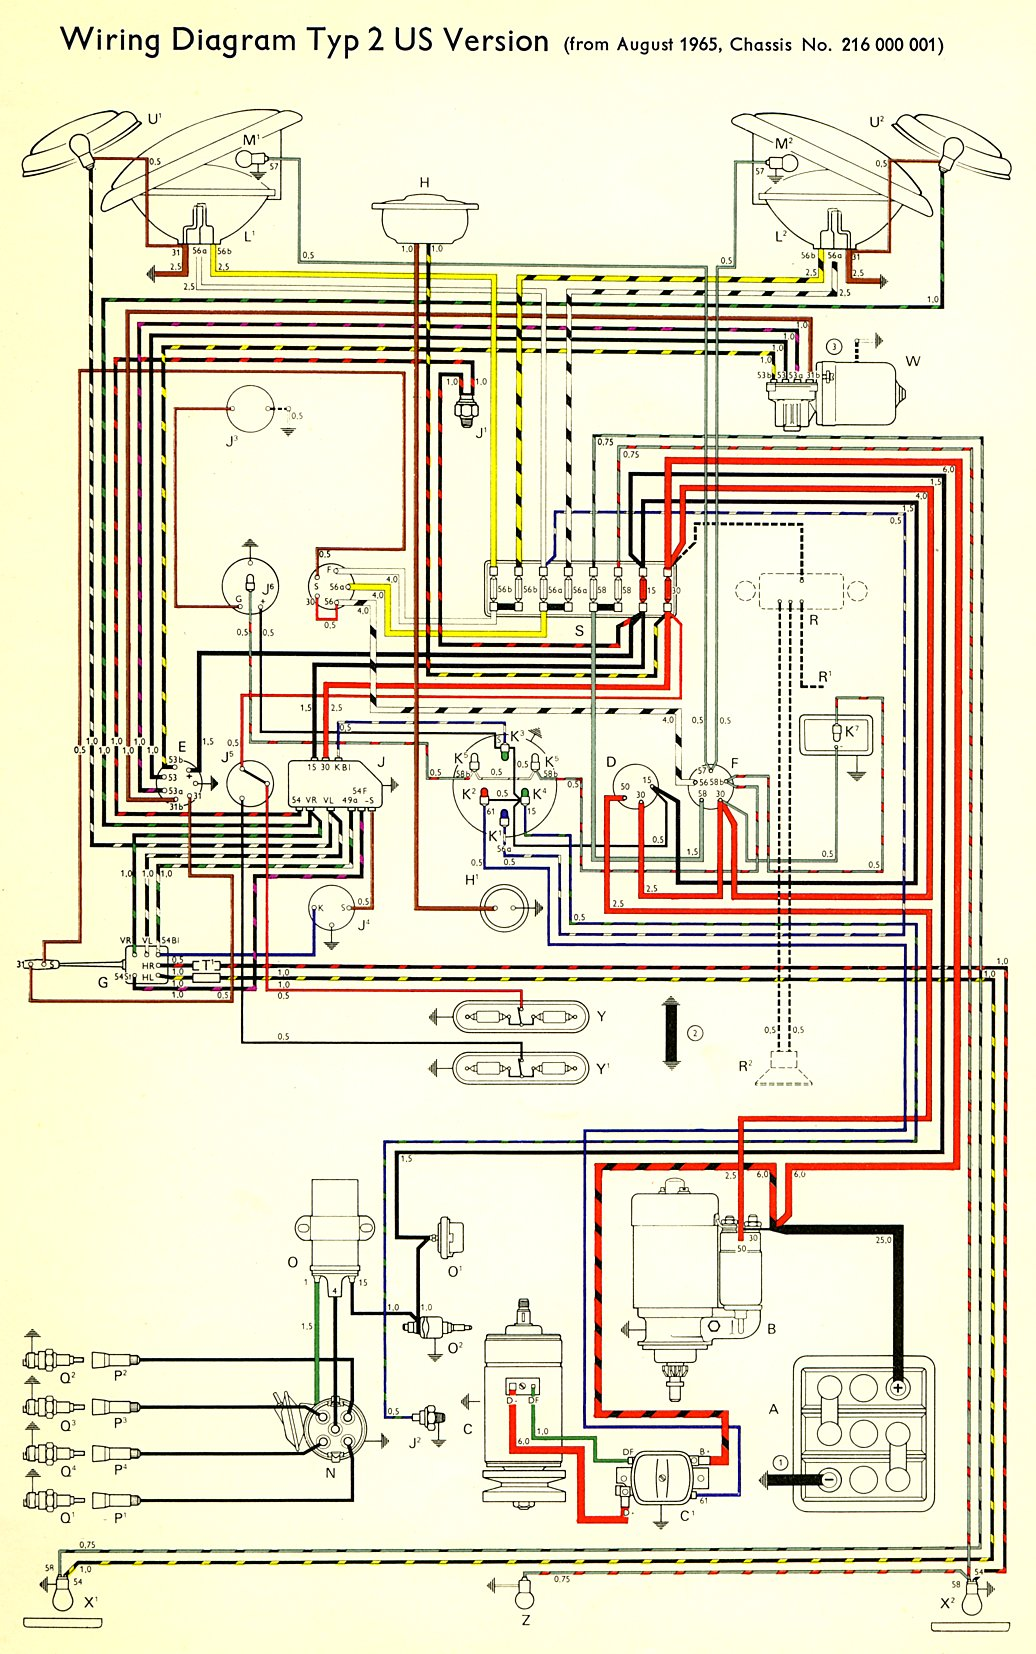 bus_66_USA 1966 bus wiring diagram (usa) thegoldenbug com 1970 vw beetle electrical wiring diagram at soozxer.org